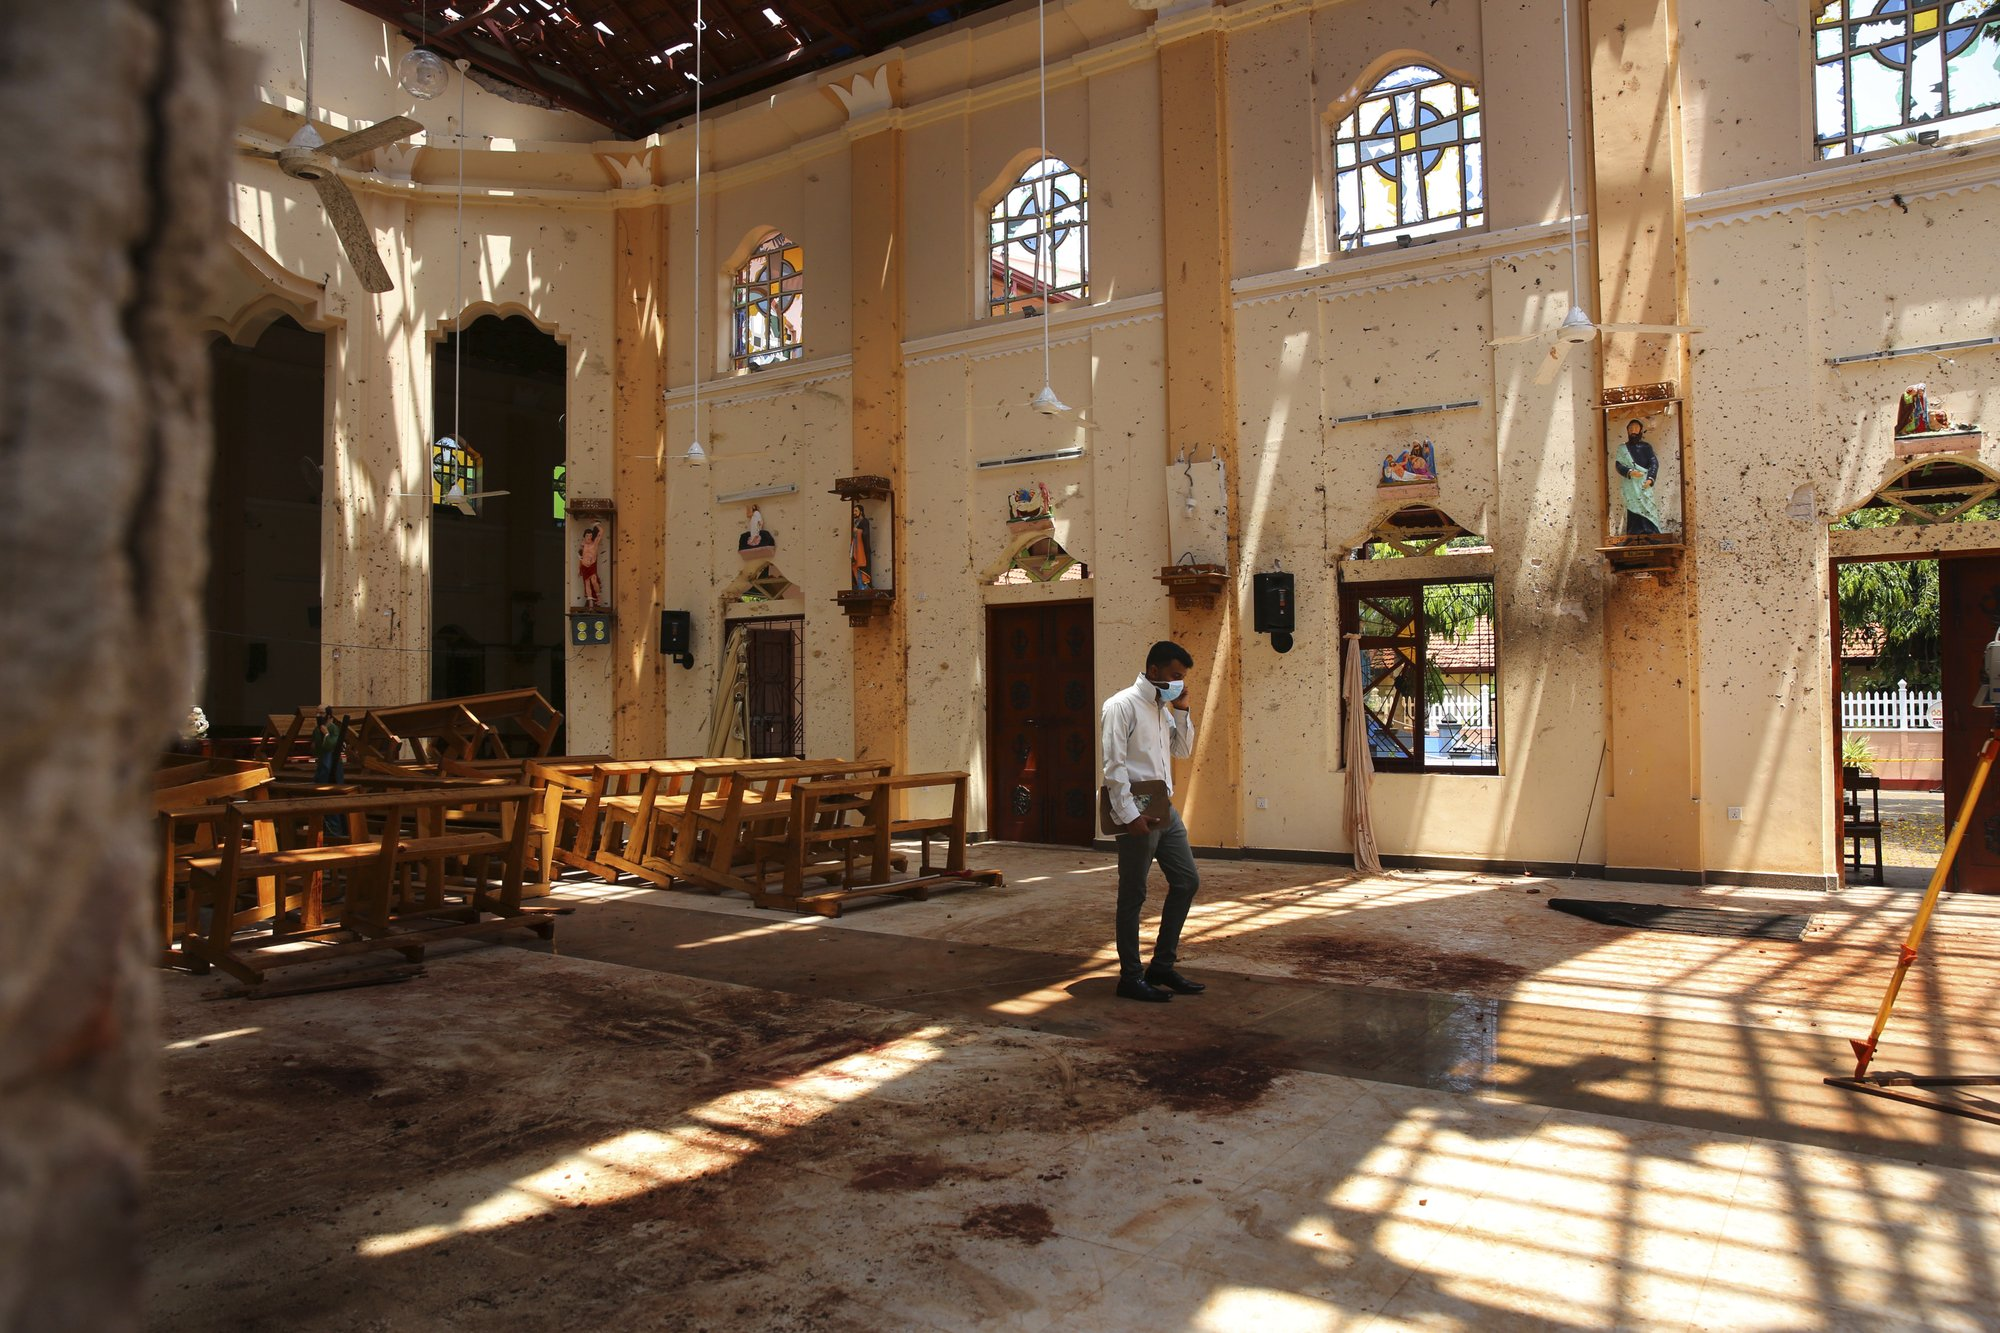 In this Thursday, April 25, 2019 photo, a surveyor walks inside the damaged St. Sebastian's Church where a suicide bomber blew himself up on Sunday Easter in Negombo, north of Colombo, Sri Lanka. Nearly a week later, even after the cleaners have come through, the blood can still be seen clearly. The statues of Jesus and the saints are still speckled with fragments of shrapnel. The smell of death is everywhere, though the bodies are long gone. (AP Photo/Manish Swarup)